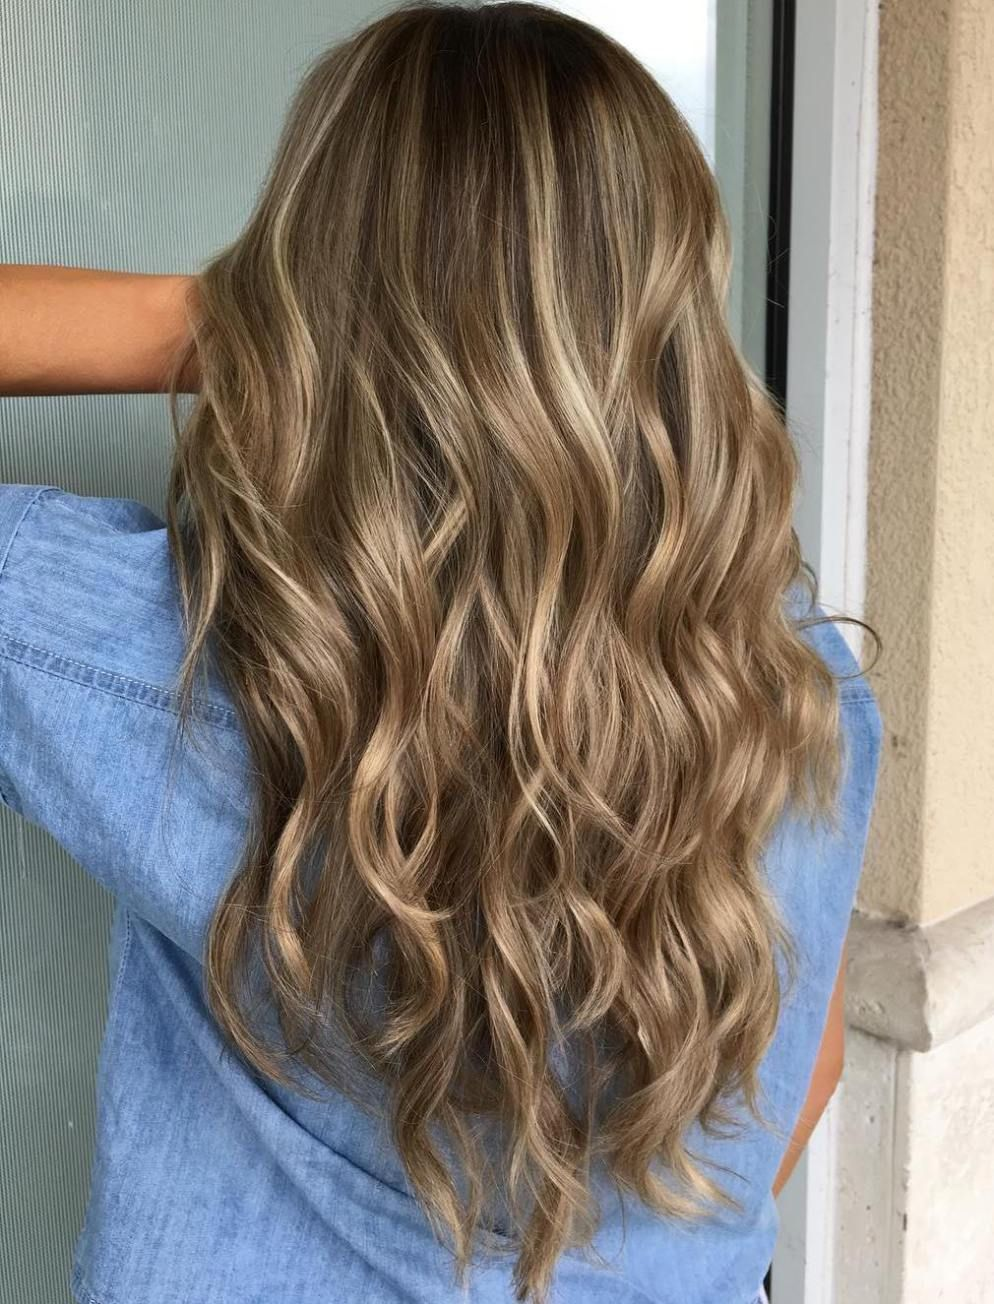 50 Blonde Hair Color Ideas For The Current Season Pinterest